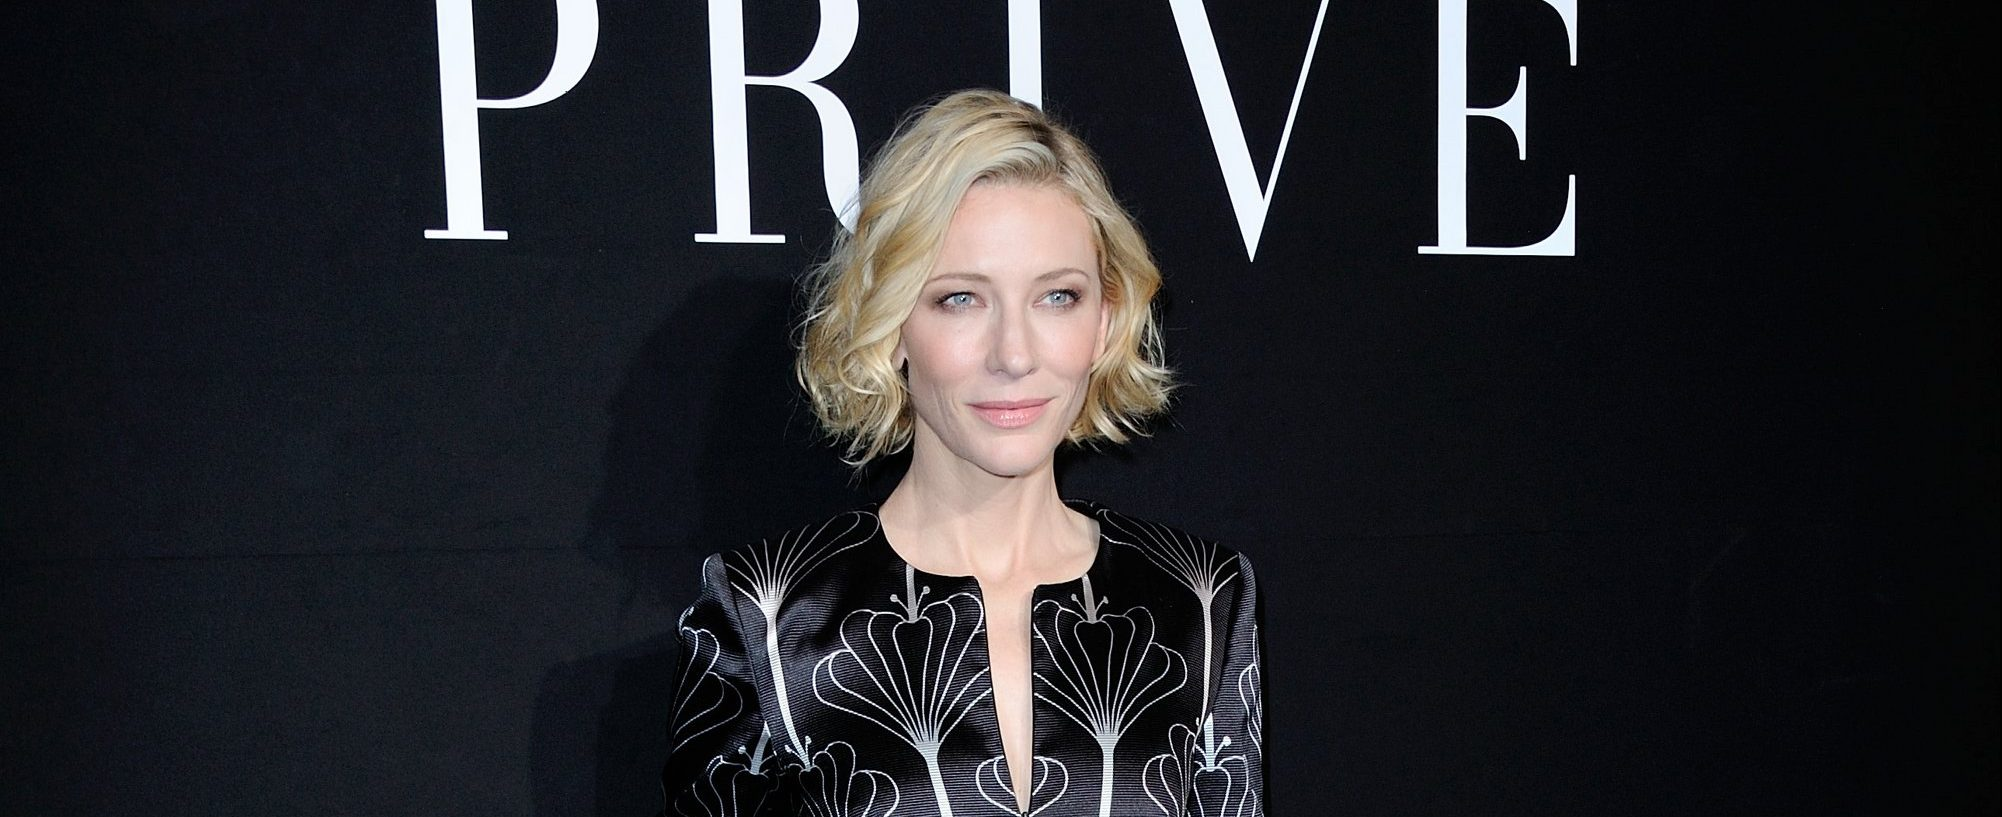 More photos from Cate Blanchett during Giorgio Armani Prive Show for Haute Couture at the Paris Fashion Week